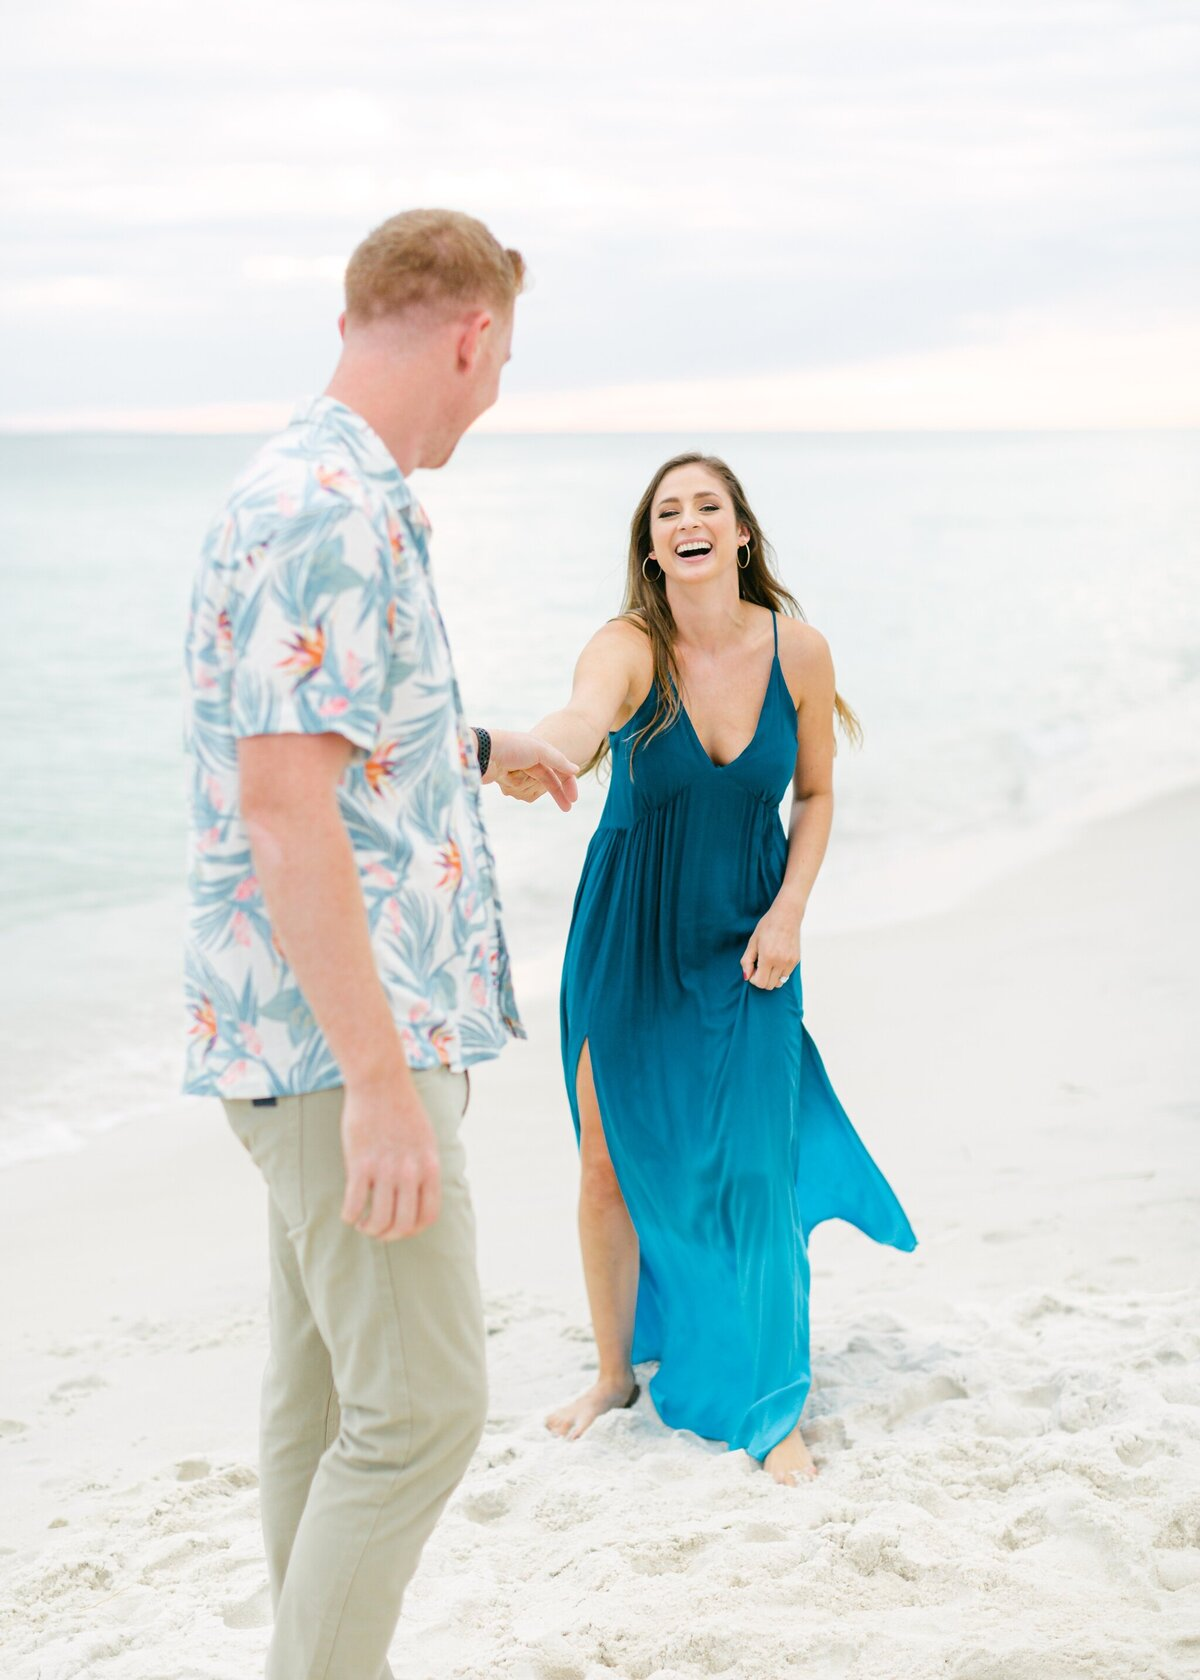 Alys-Rosemary-Beach-Engagement-Photographer_Jessie-Barksdale-Photography_087